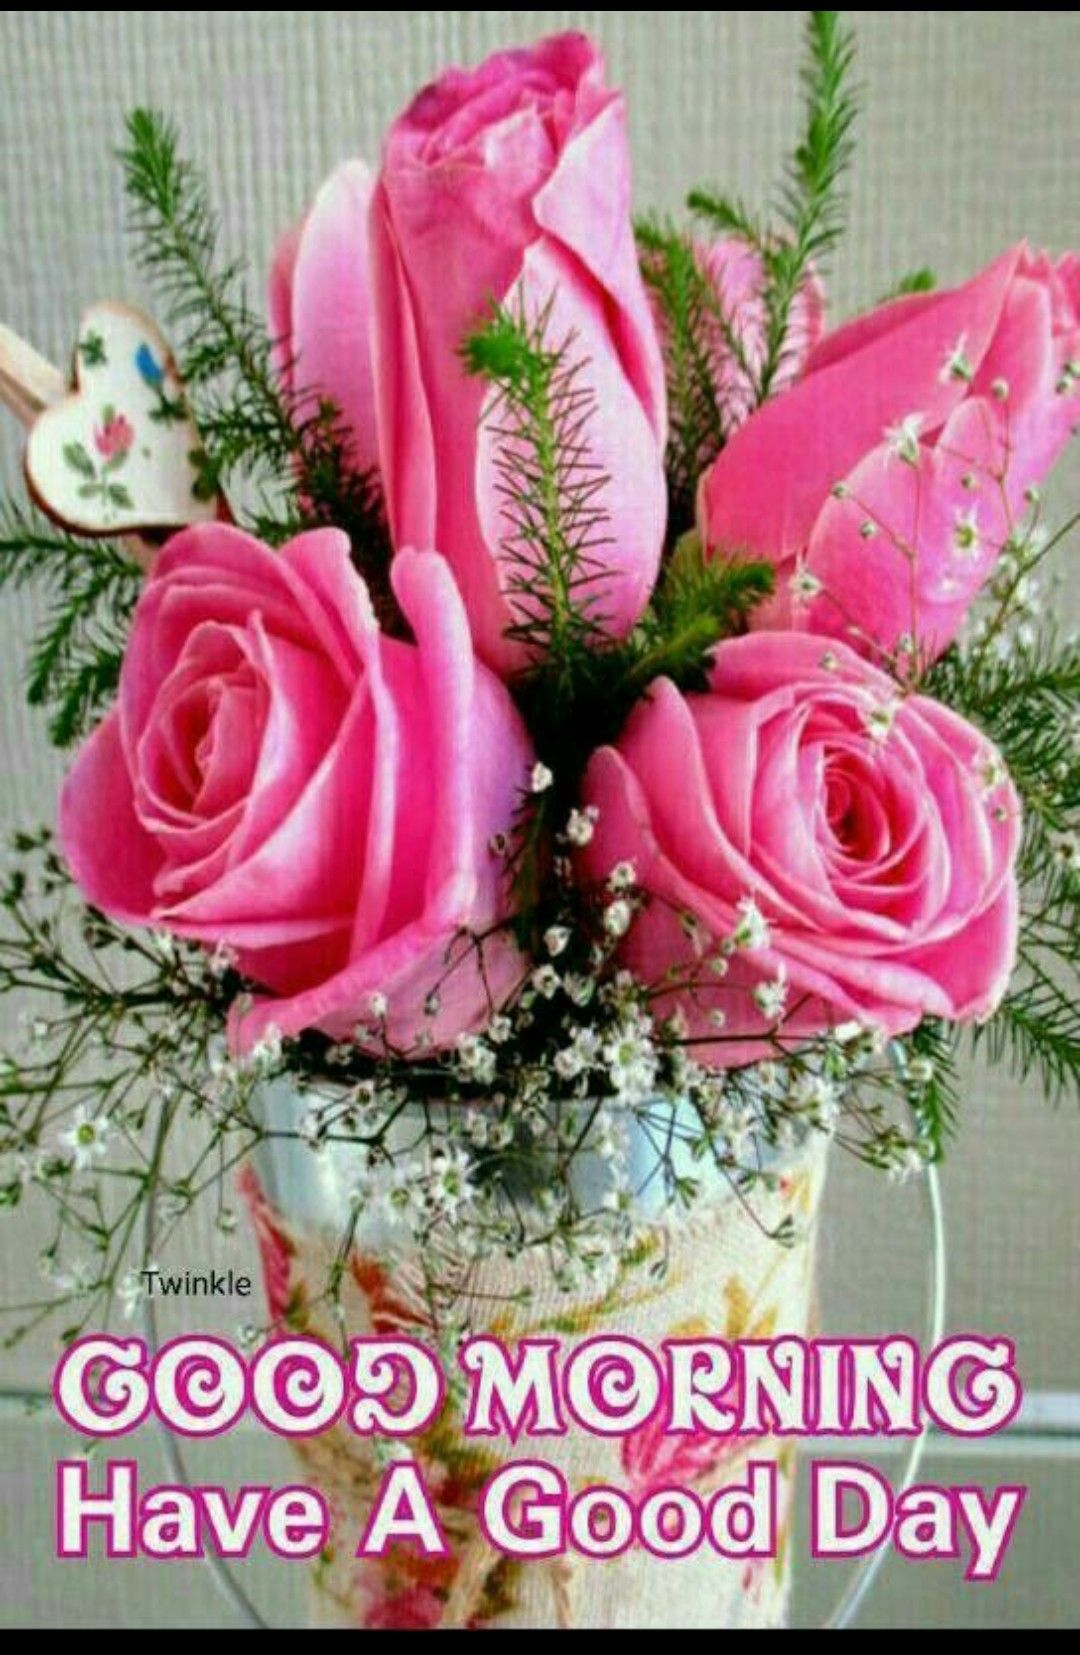 Good Morning Greetings Rose Flower Wallpaper Beautiful Flowers Wallpapers Rose Flower Arrangements